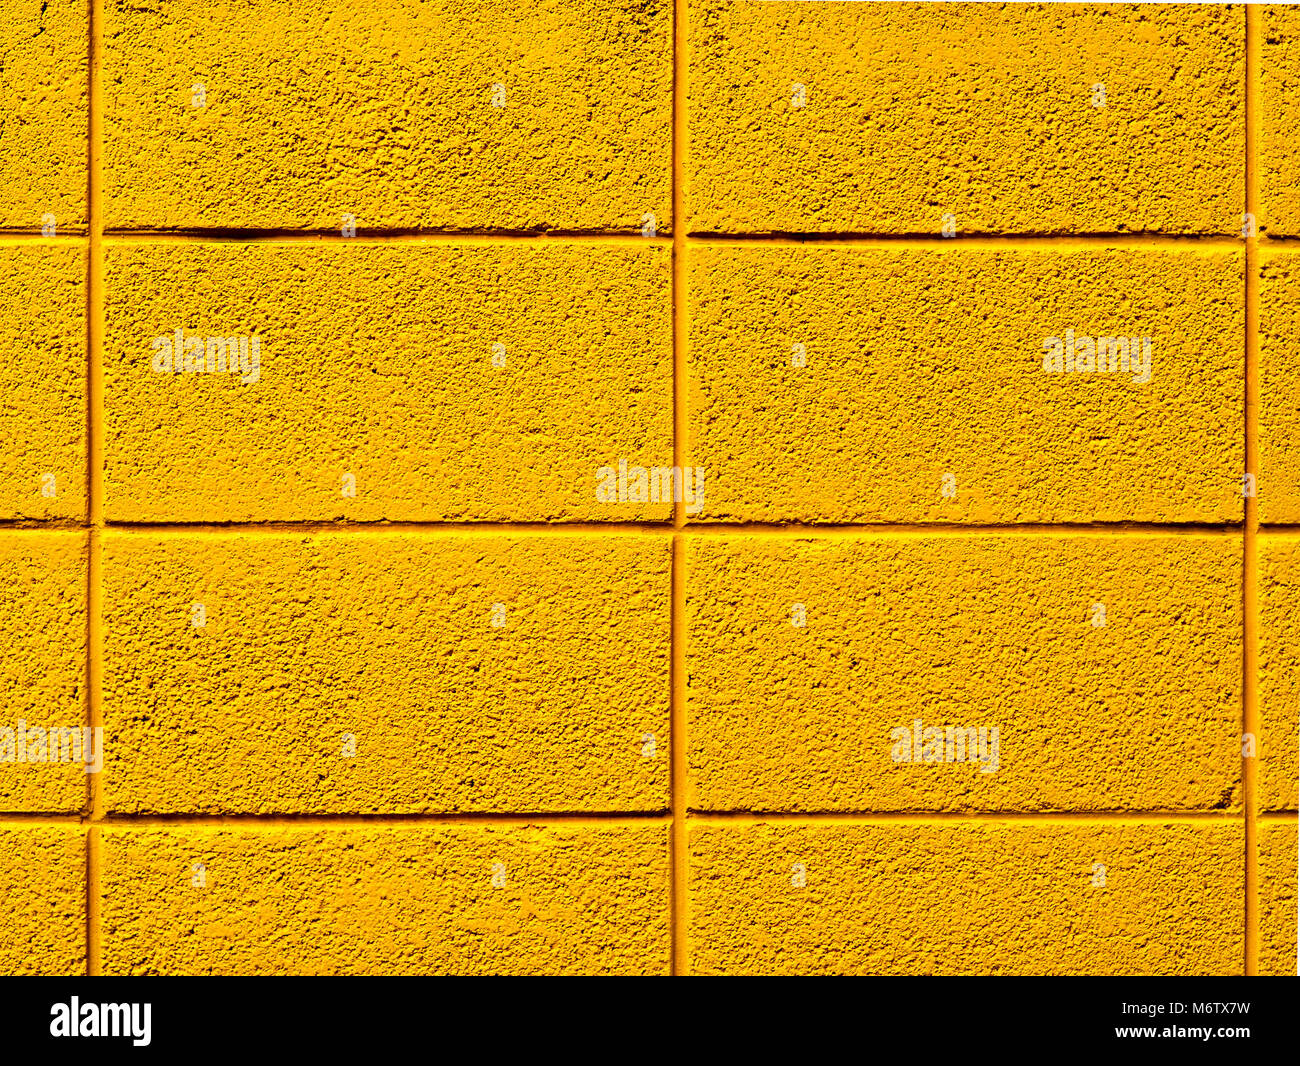 Bright yellow painted cinder block wall background photograph Stock ...